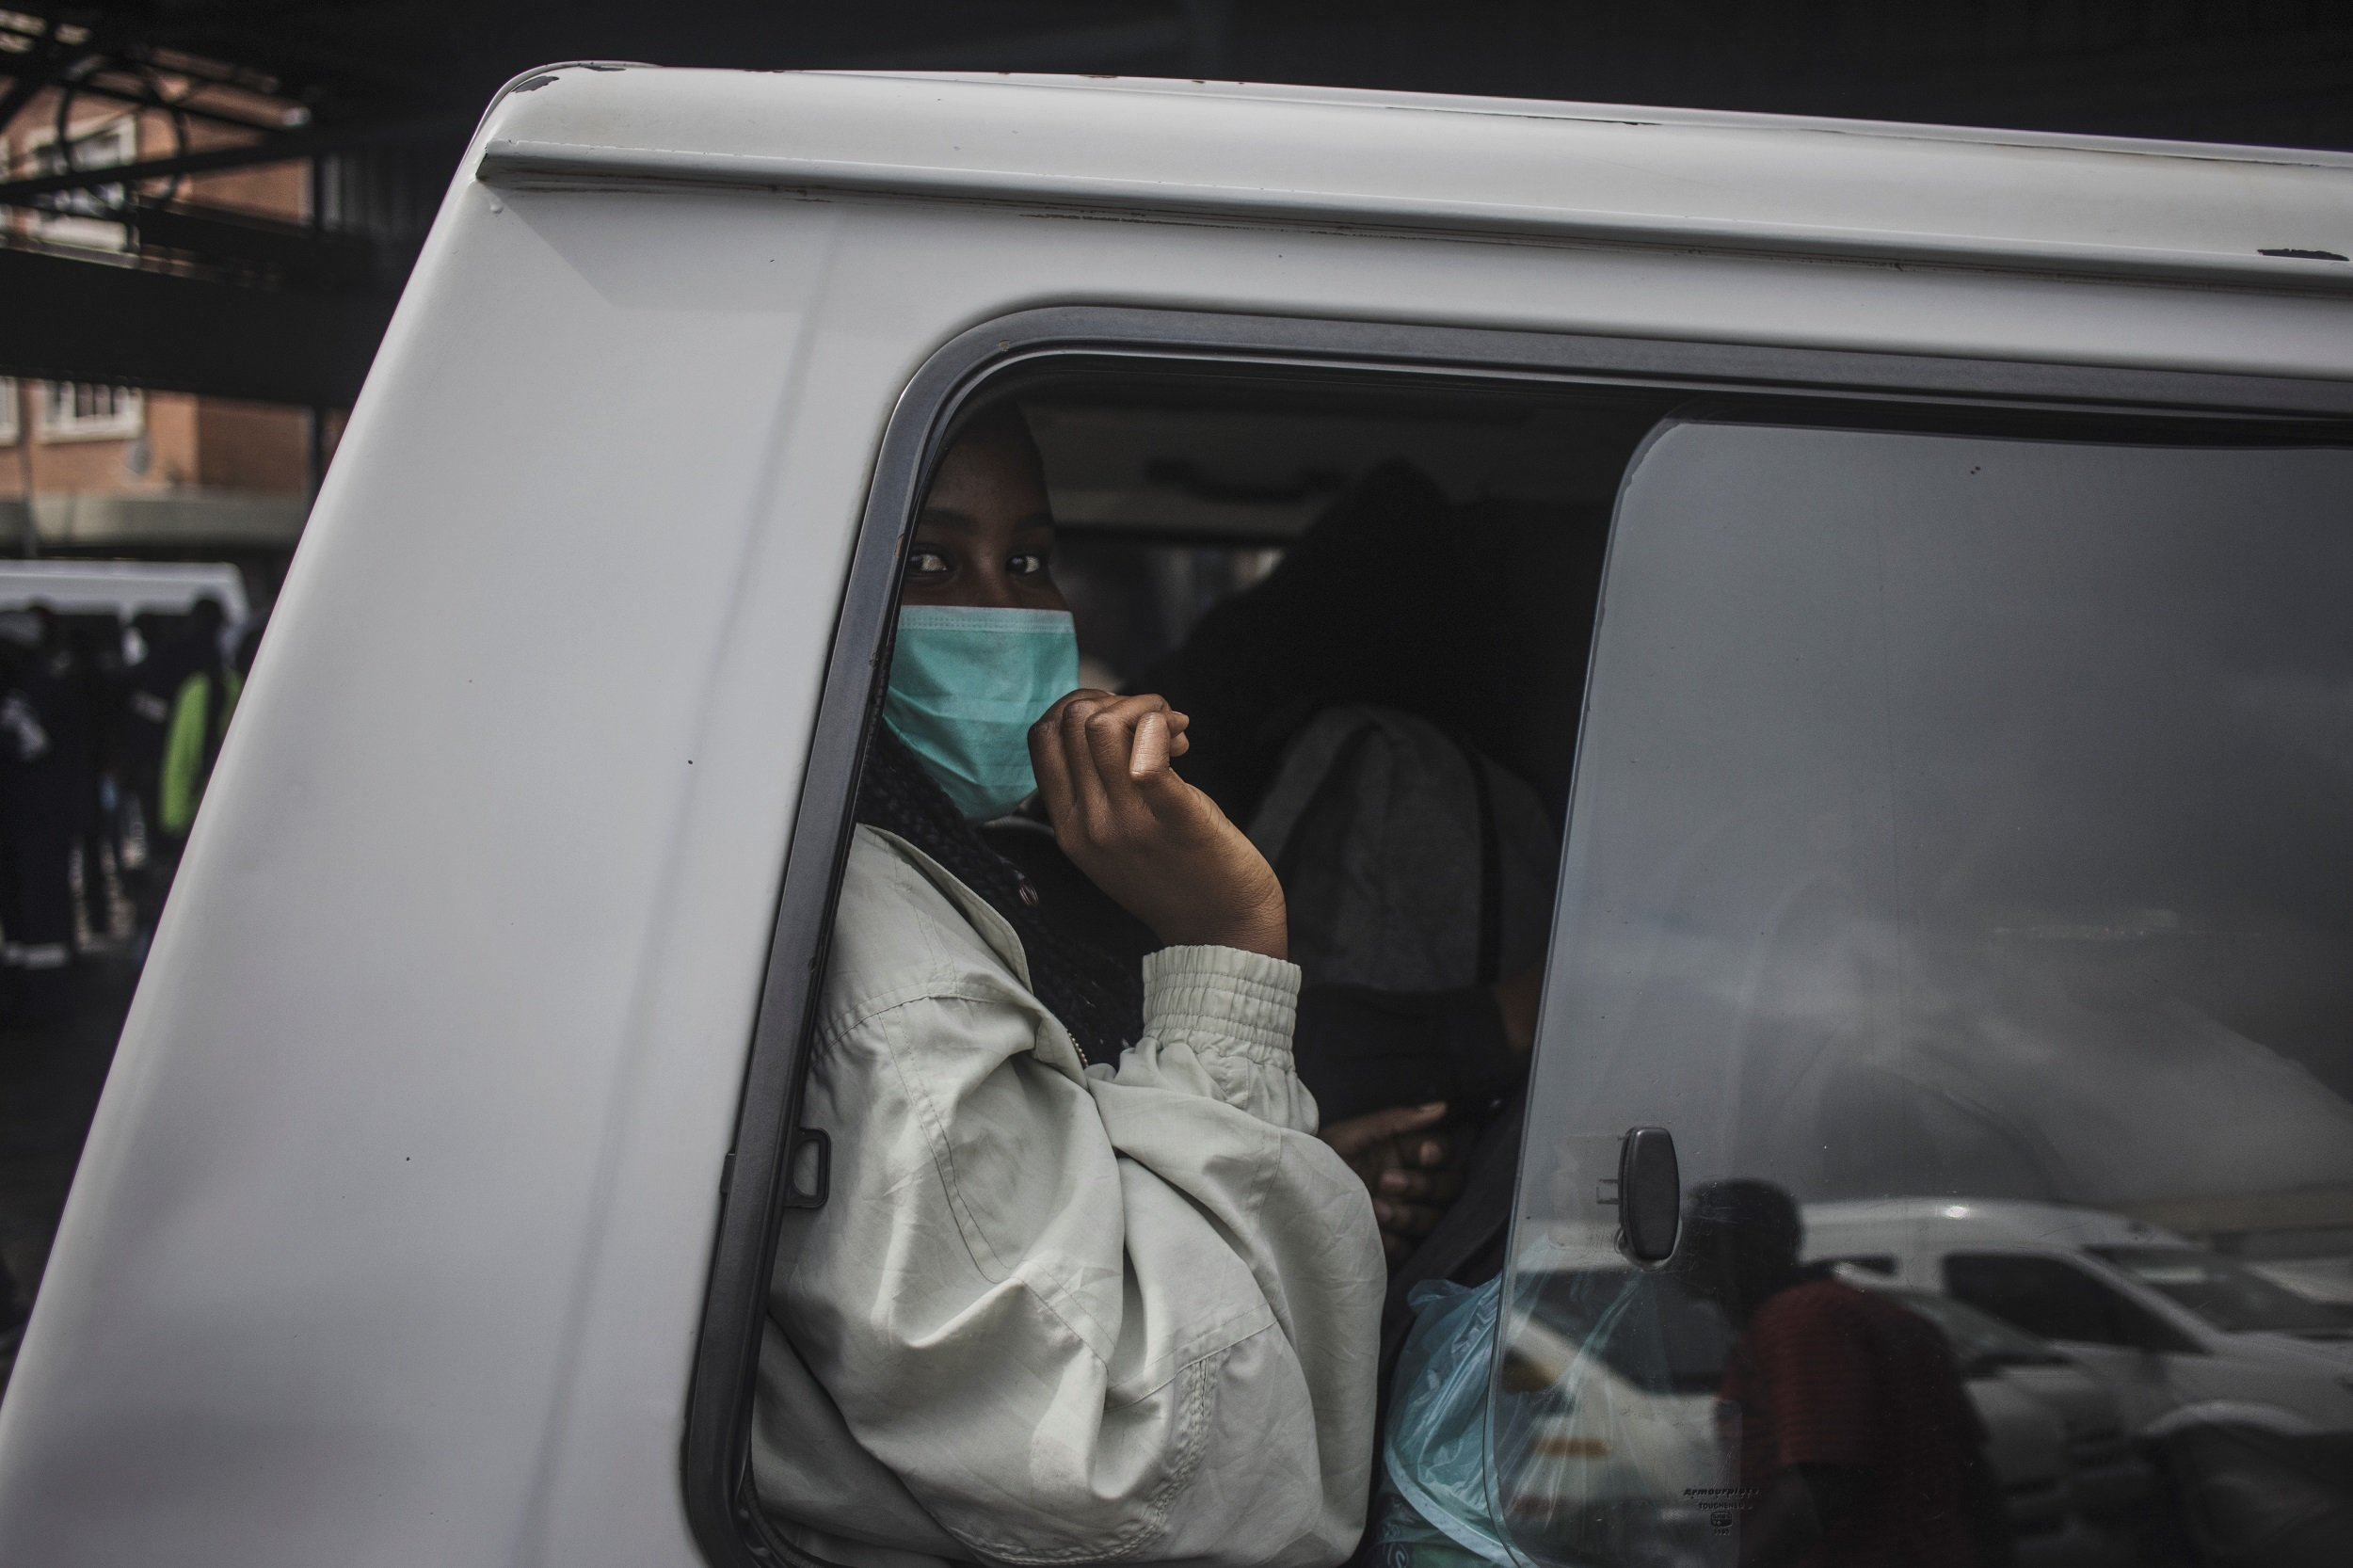 A commuter wearing a face mask as a preventive measure sits in a taxi at the Wanderers taxi rank in Johannesburg.